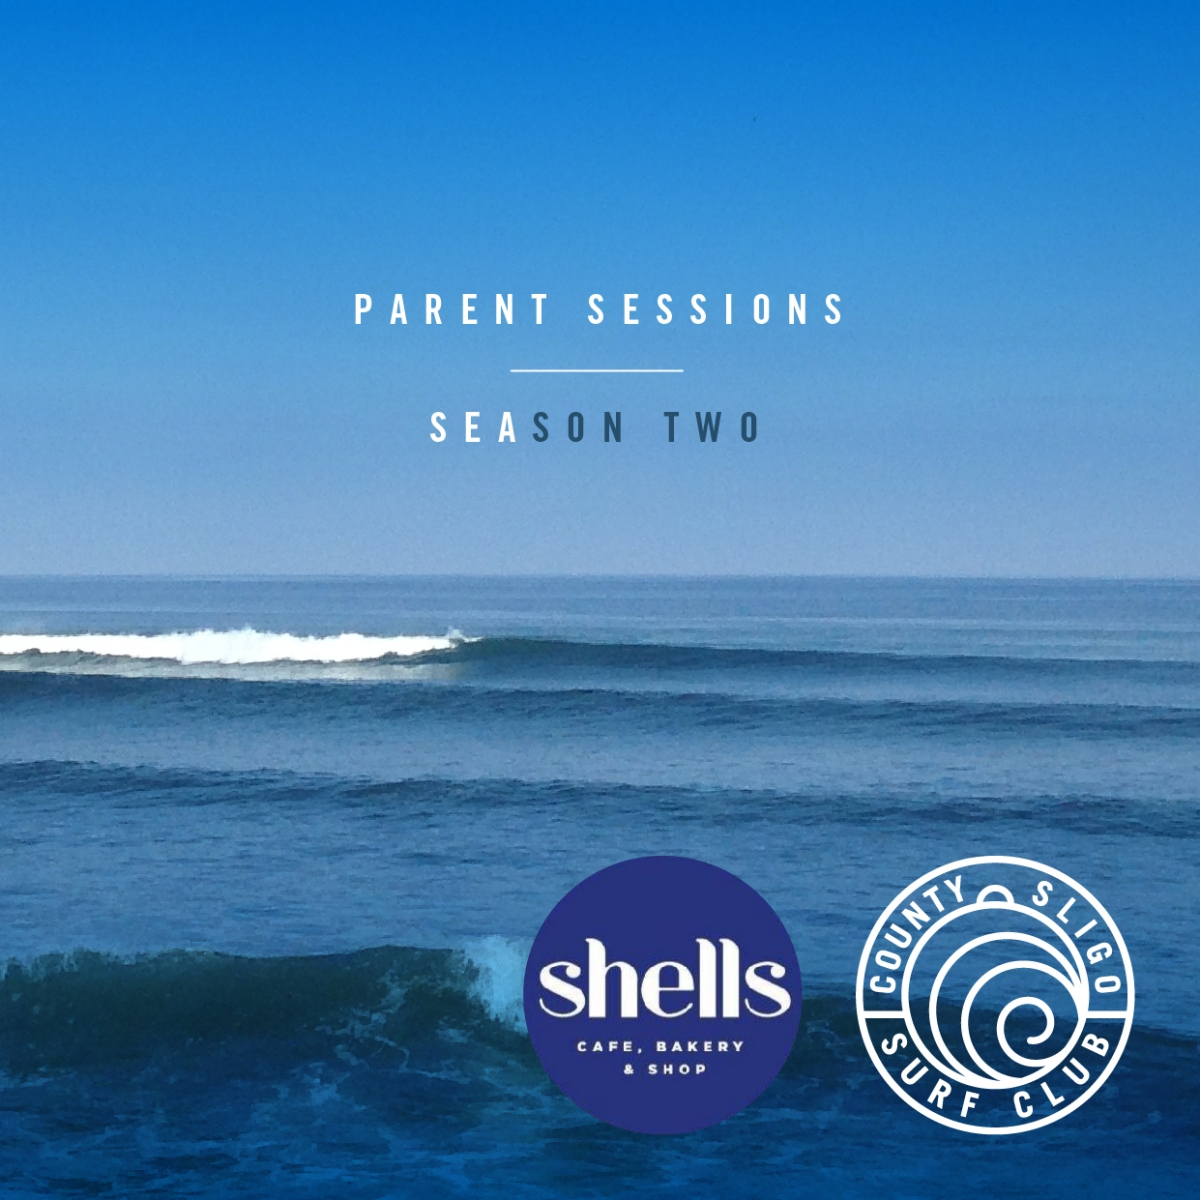 Shells Parent Sessions hasstarted